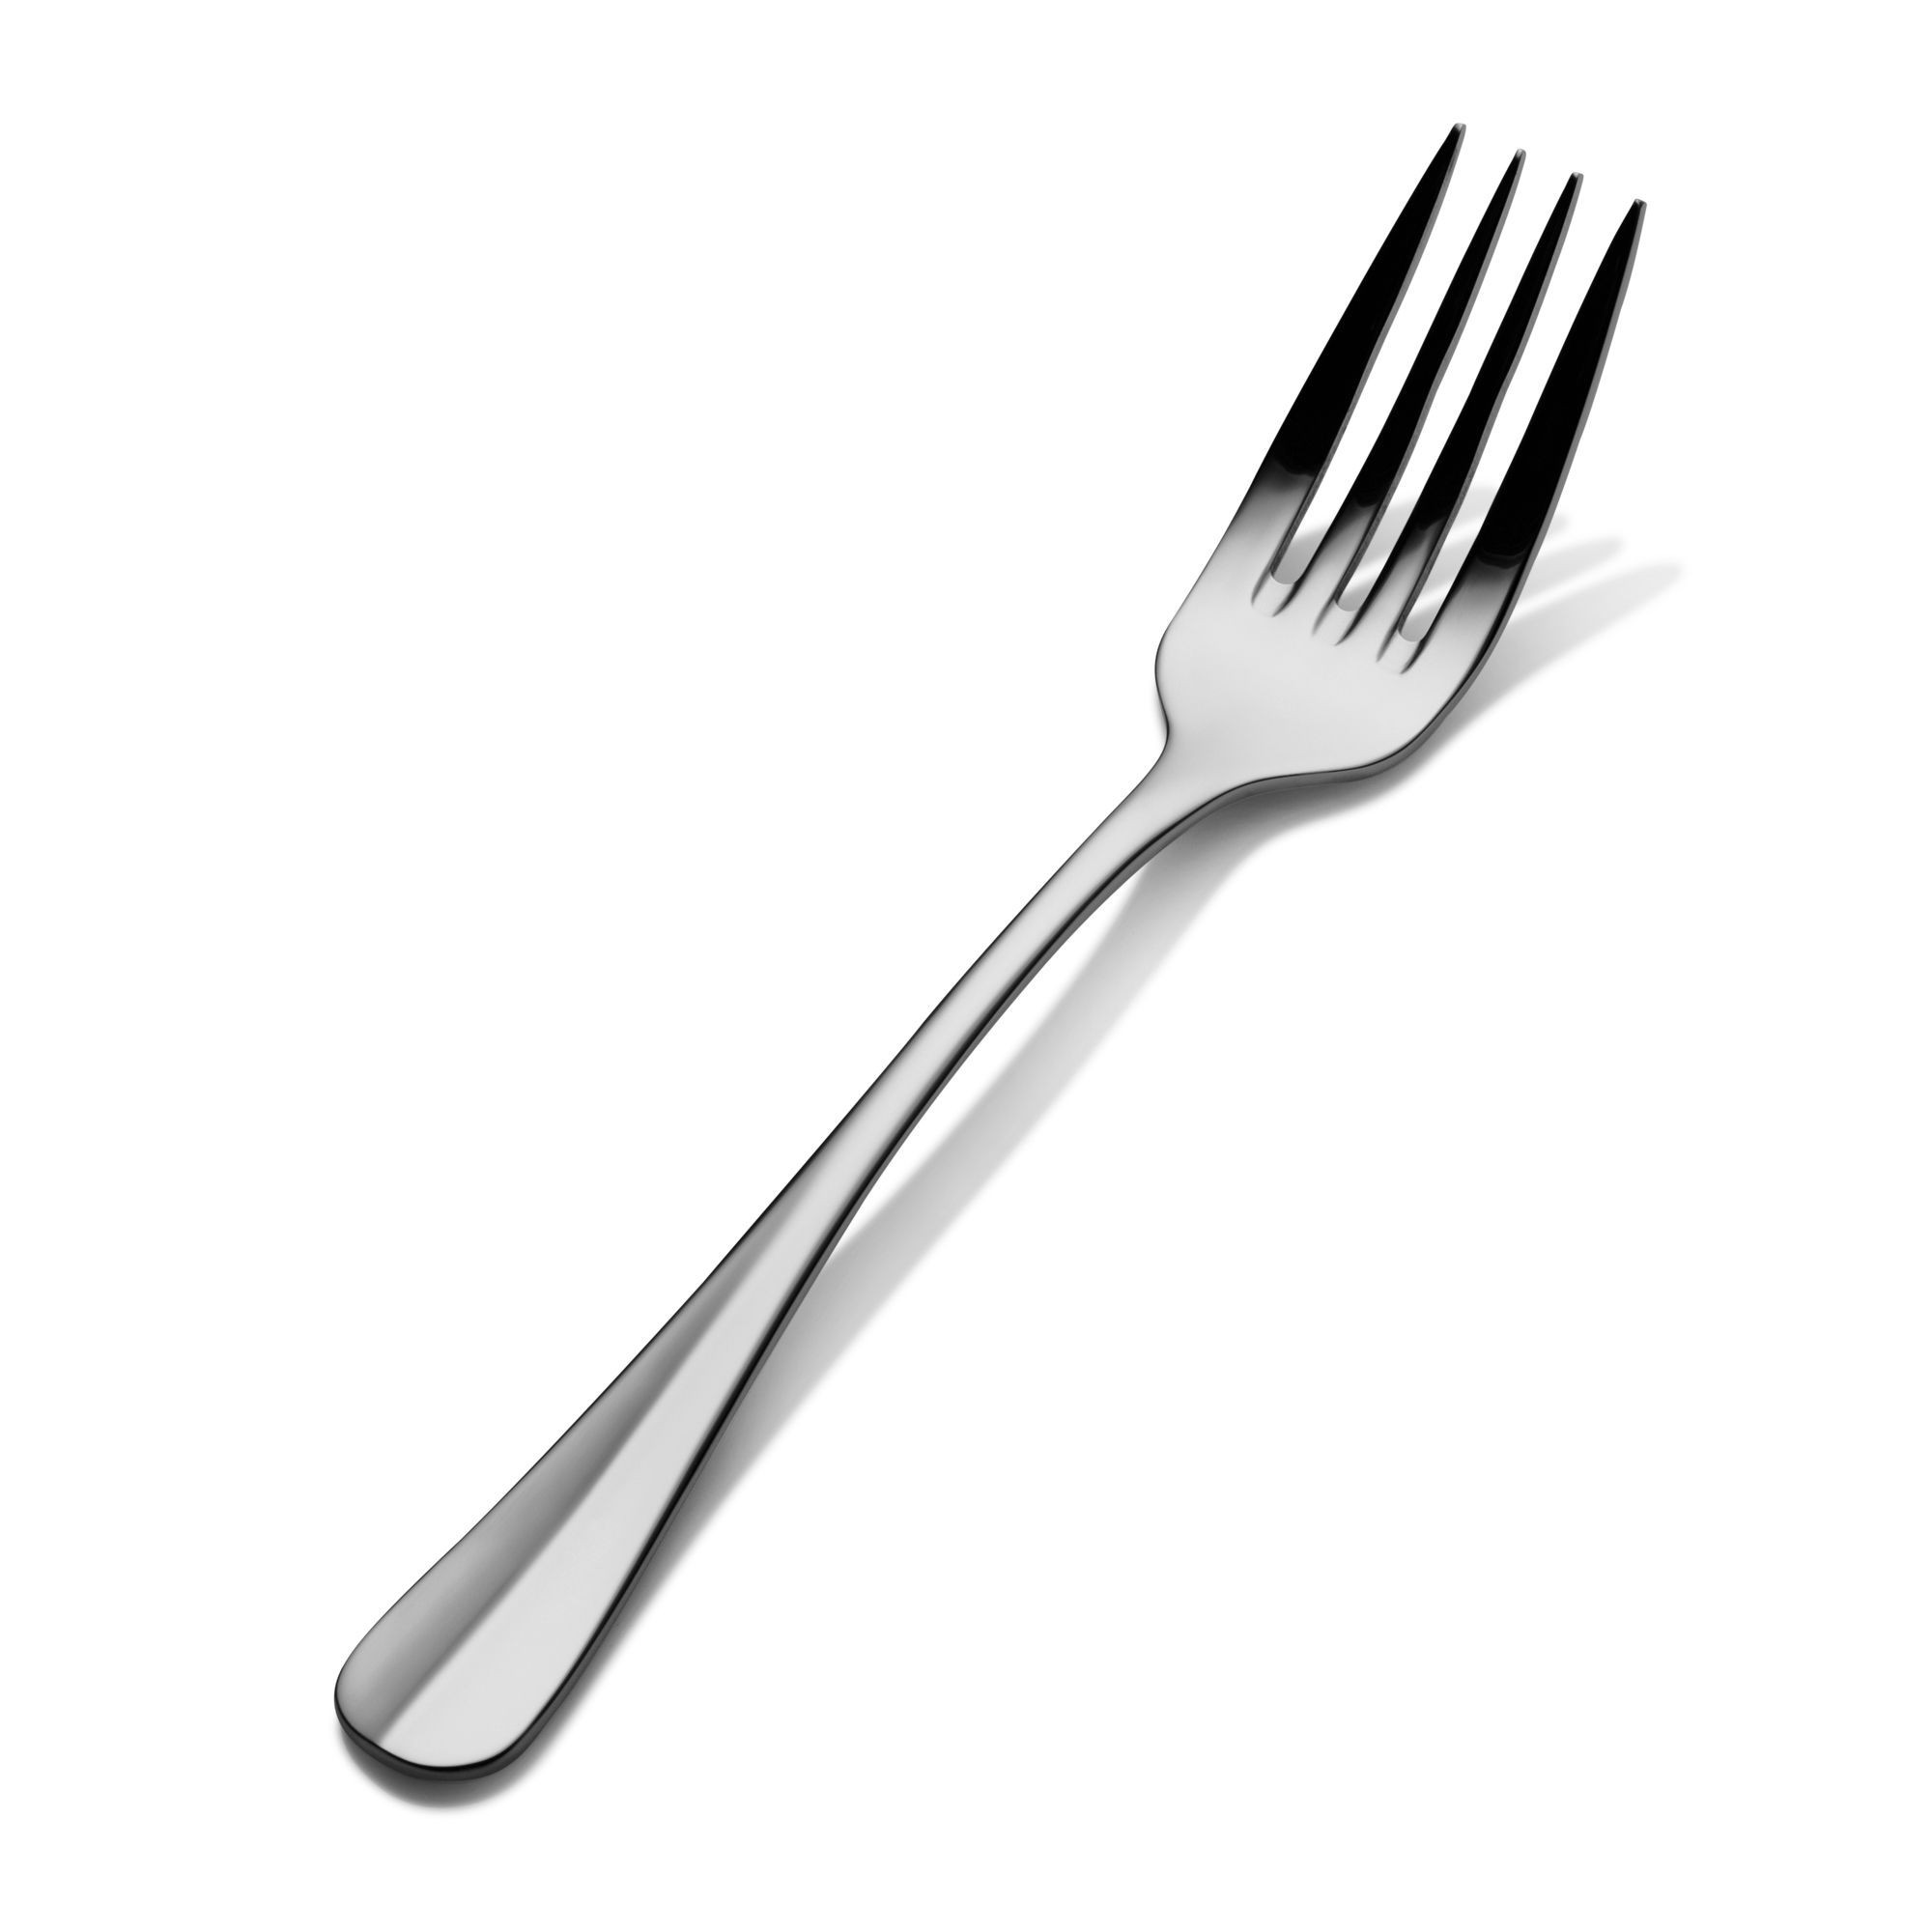 Bon Chef S1105S Chambers 18/8 Stainless Steel Silverplated Regular Dinner Fork